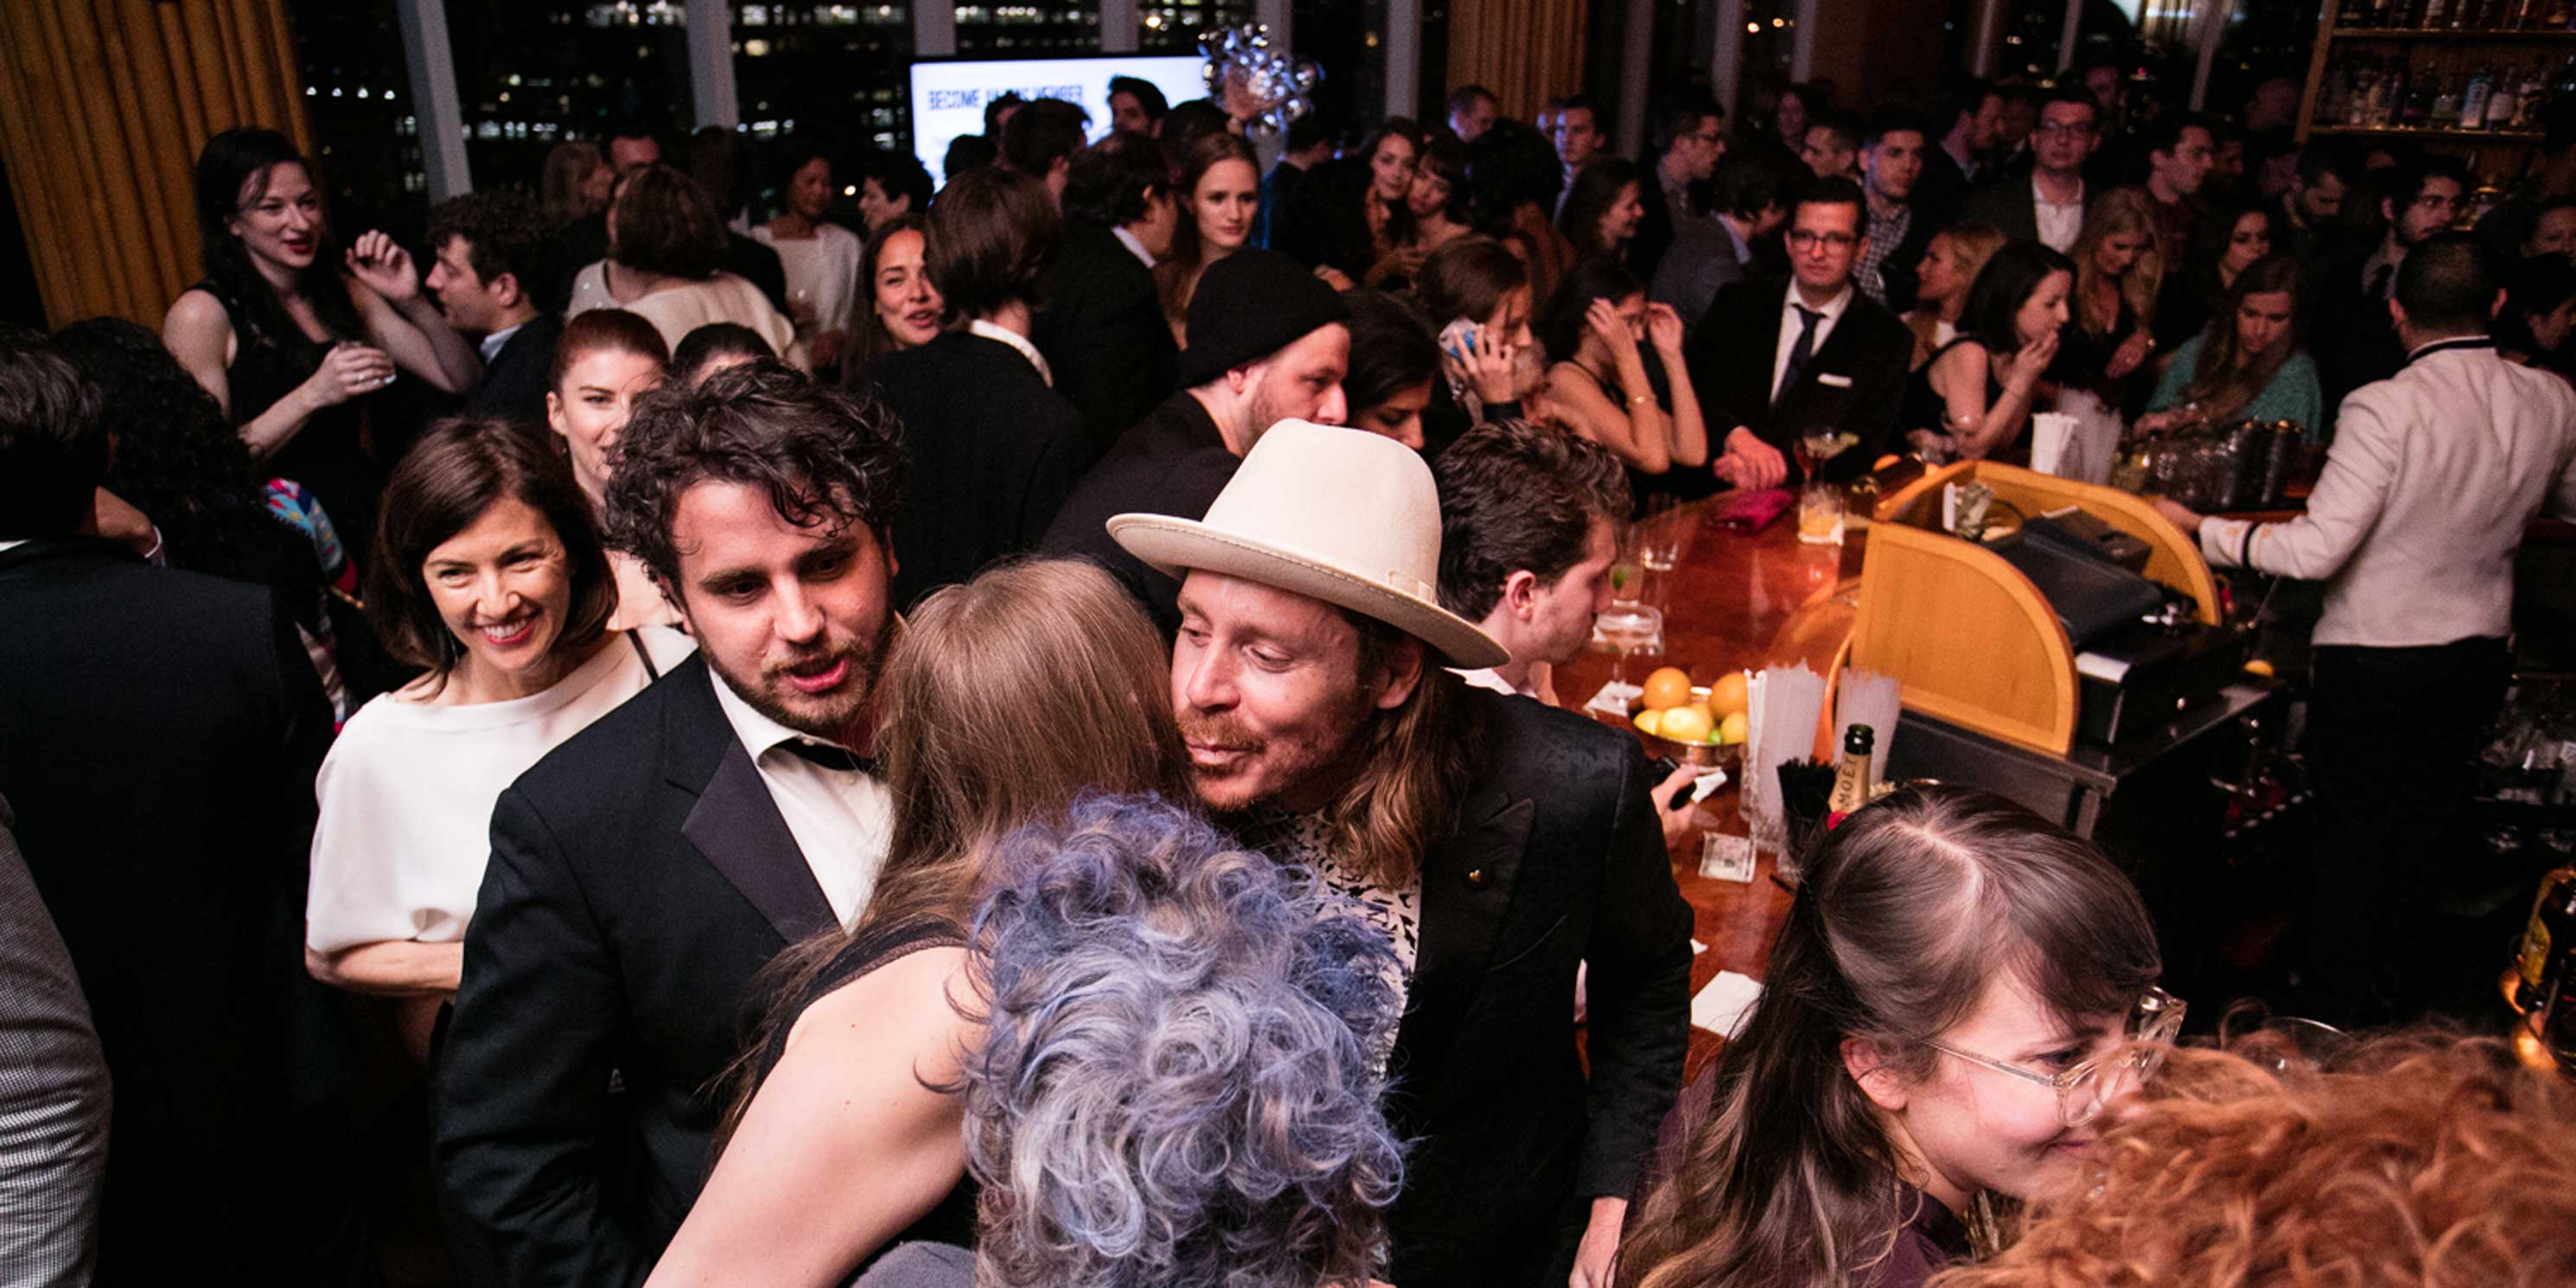 partygoers at the Municipal Art Society of New York's After Dark Party